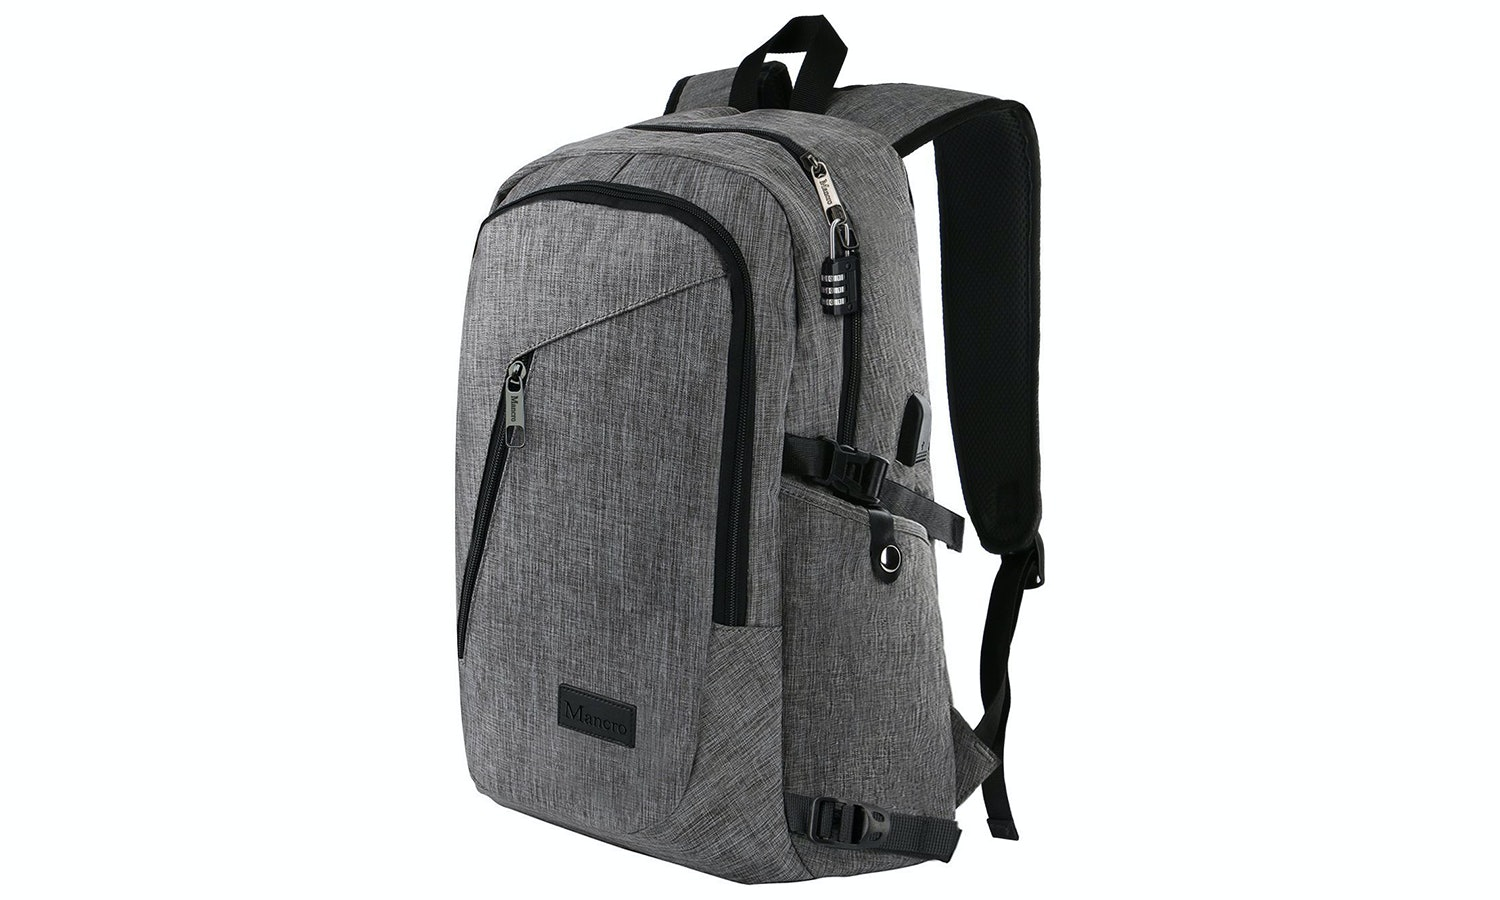 57f2dde1a1a6 The 5 Best Travel Backpacks For Women